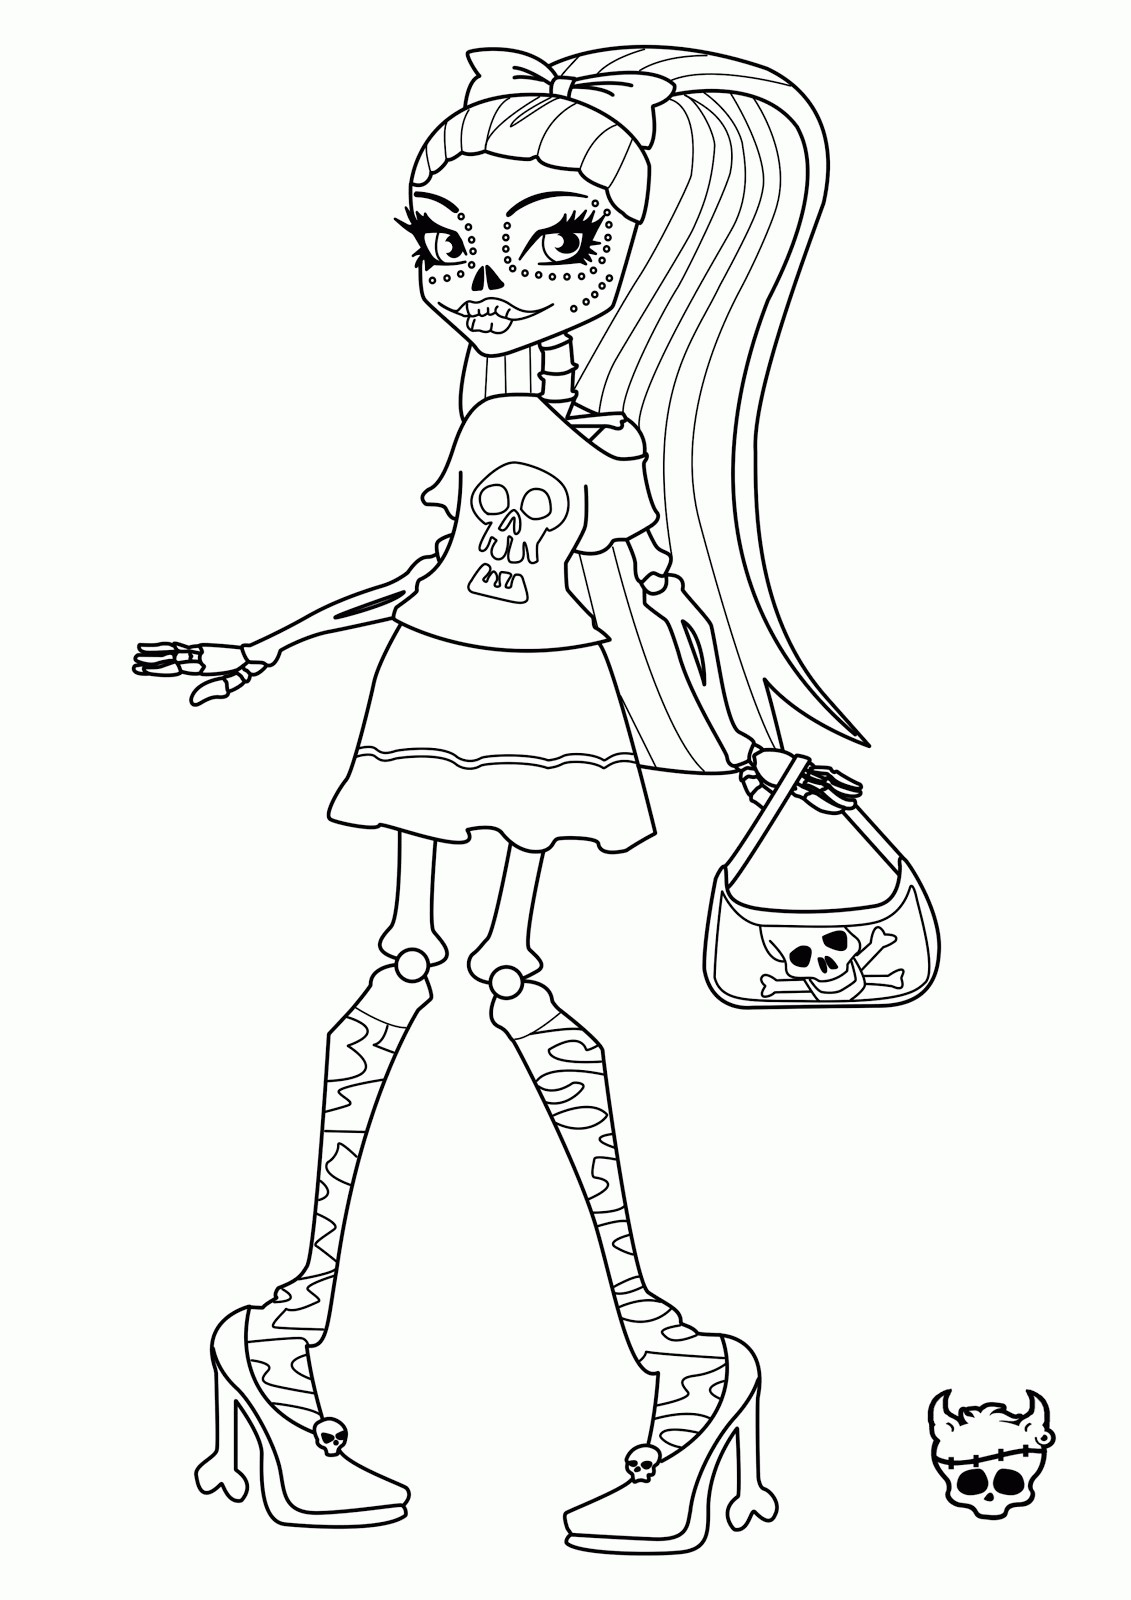 Monster High Coloring Pages Cartoon Jr Fresh Frankie Stein Color to Print Of Monster High Coloring Pages Monster High Coloring Page All Collection